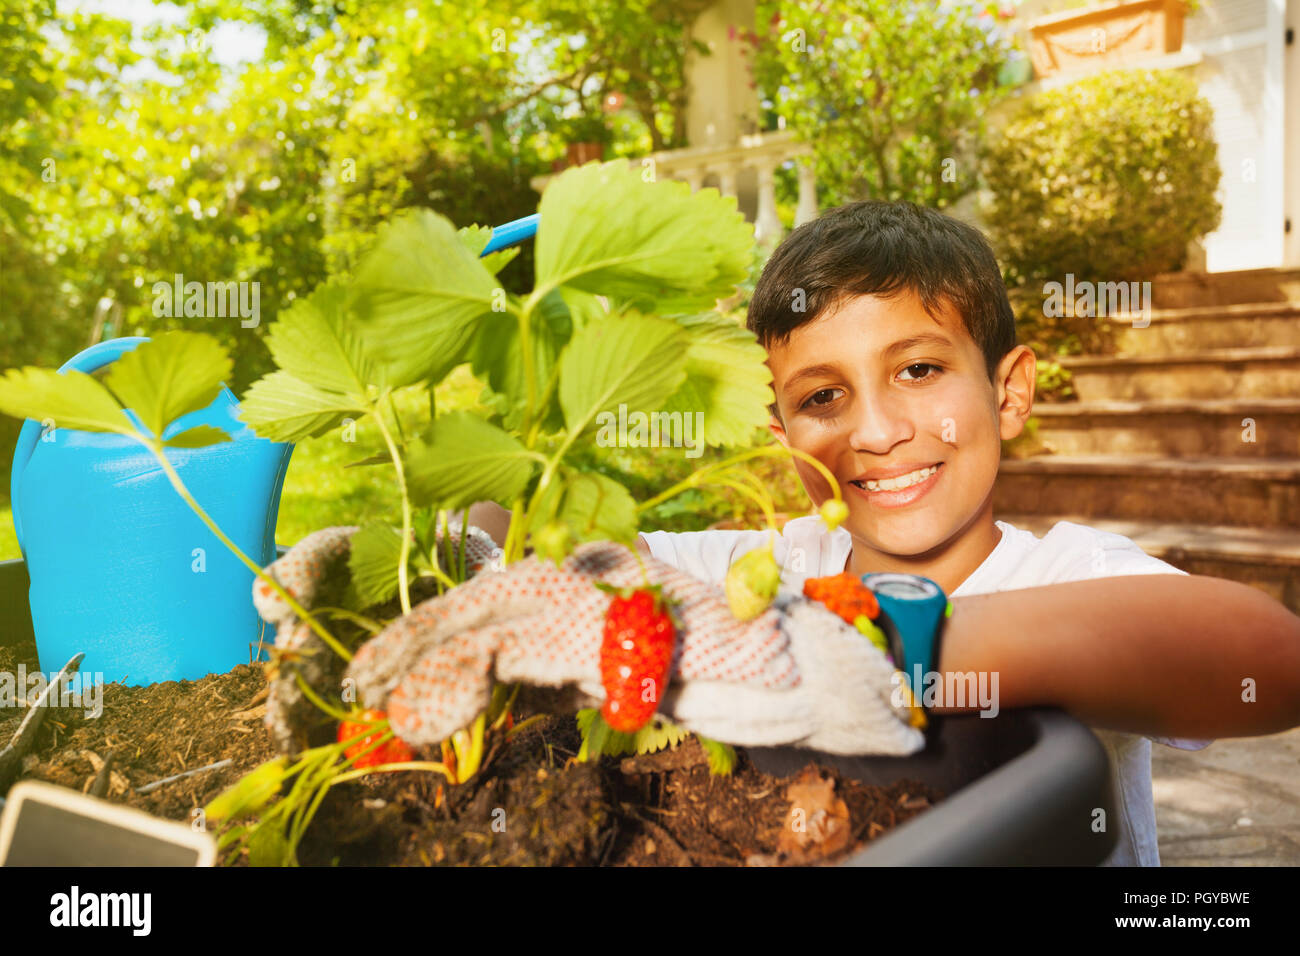 Portrait of happy preteen boy, wearing gardening gloves, planting strawberries in container - Stock Image